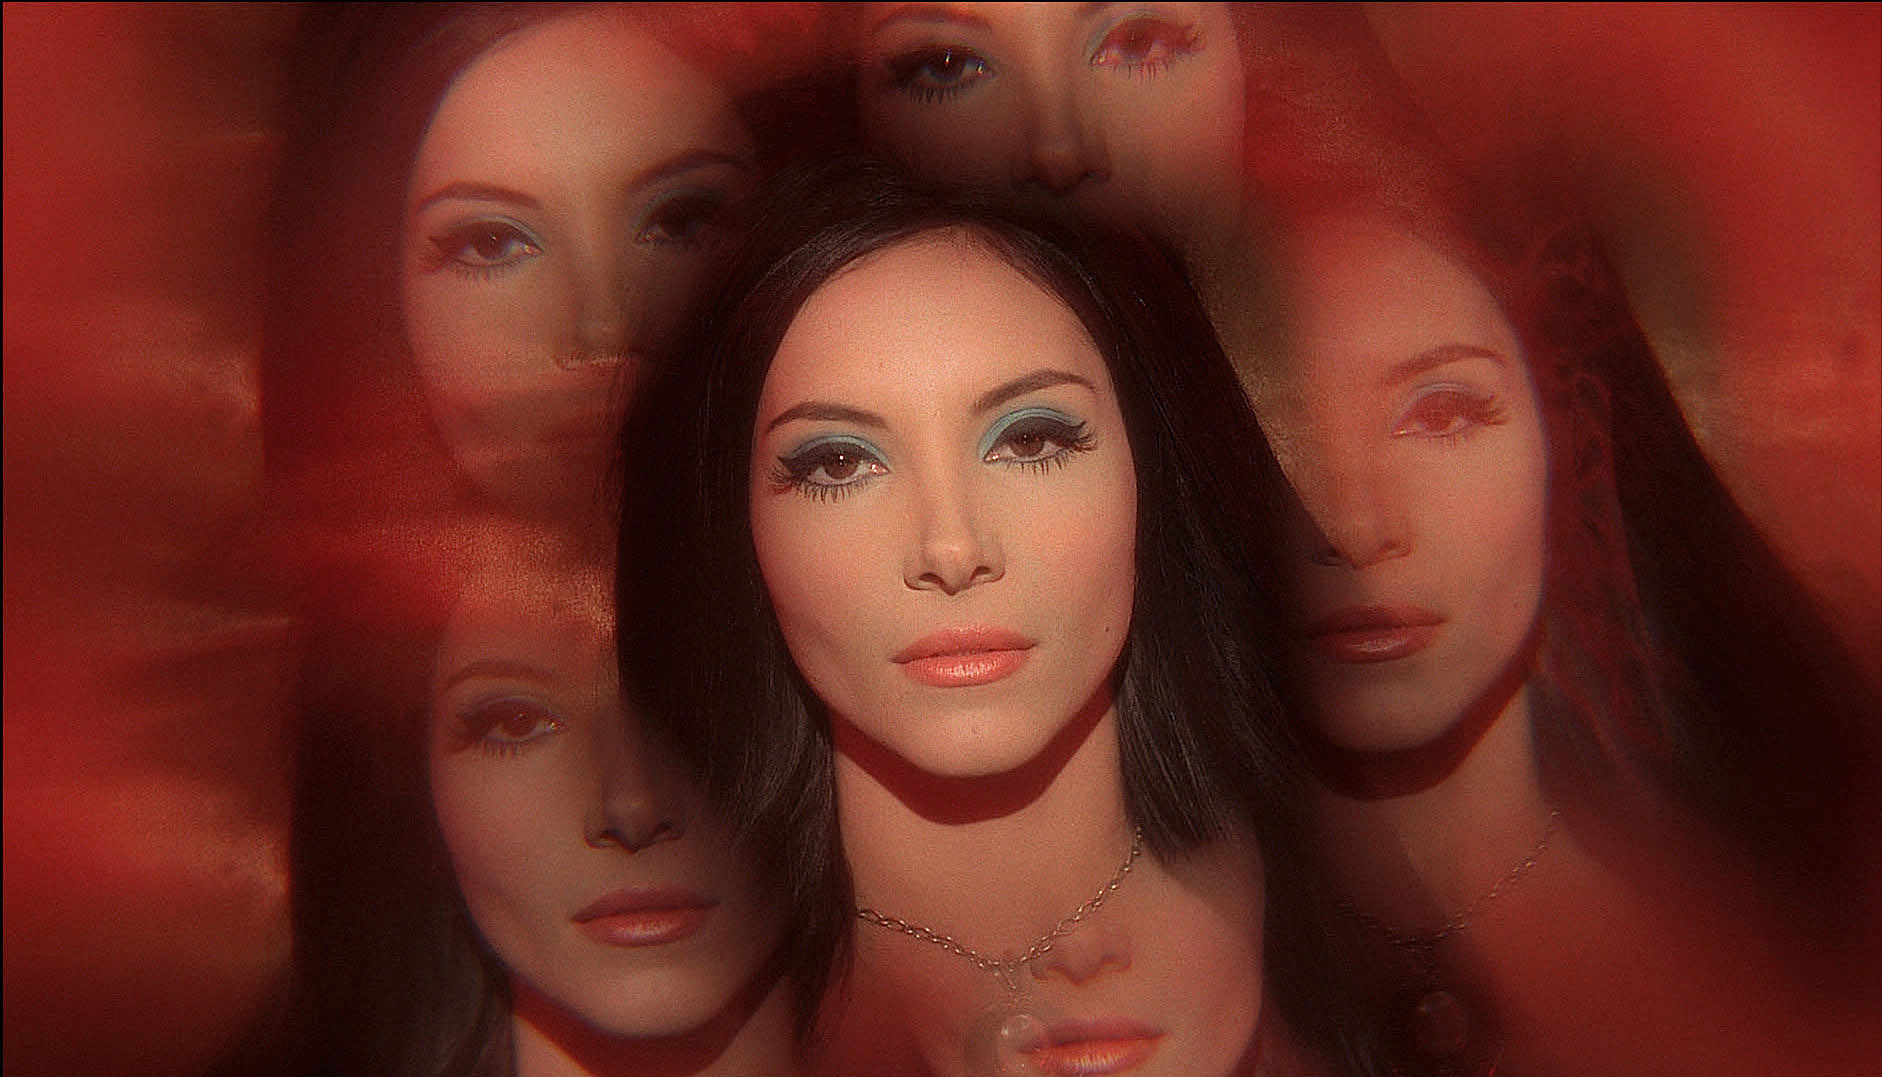 A mesmerizing image of Elaine (actress Samantha Robinson), from The Love Witch.